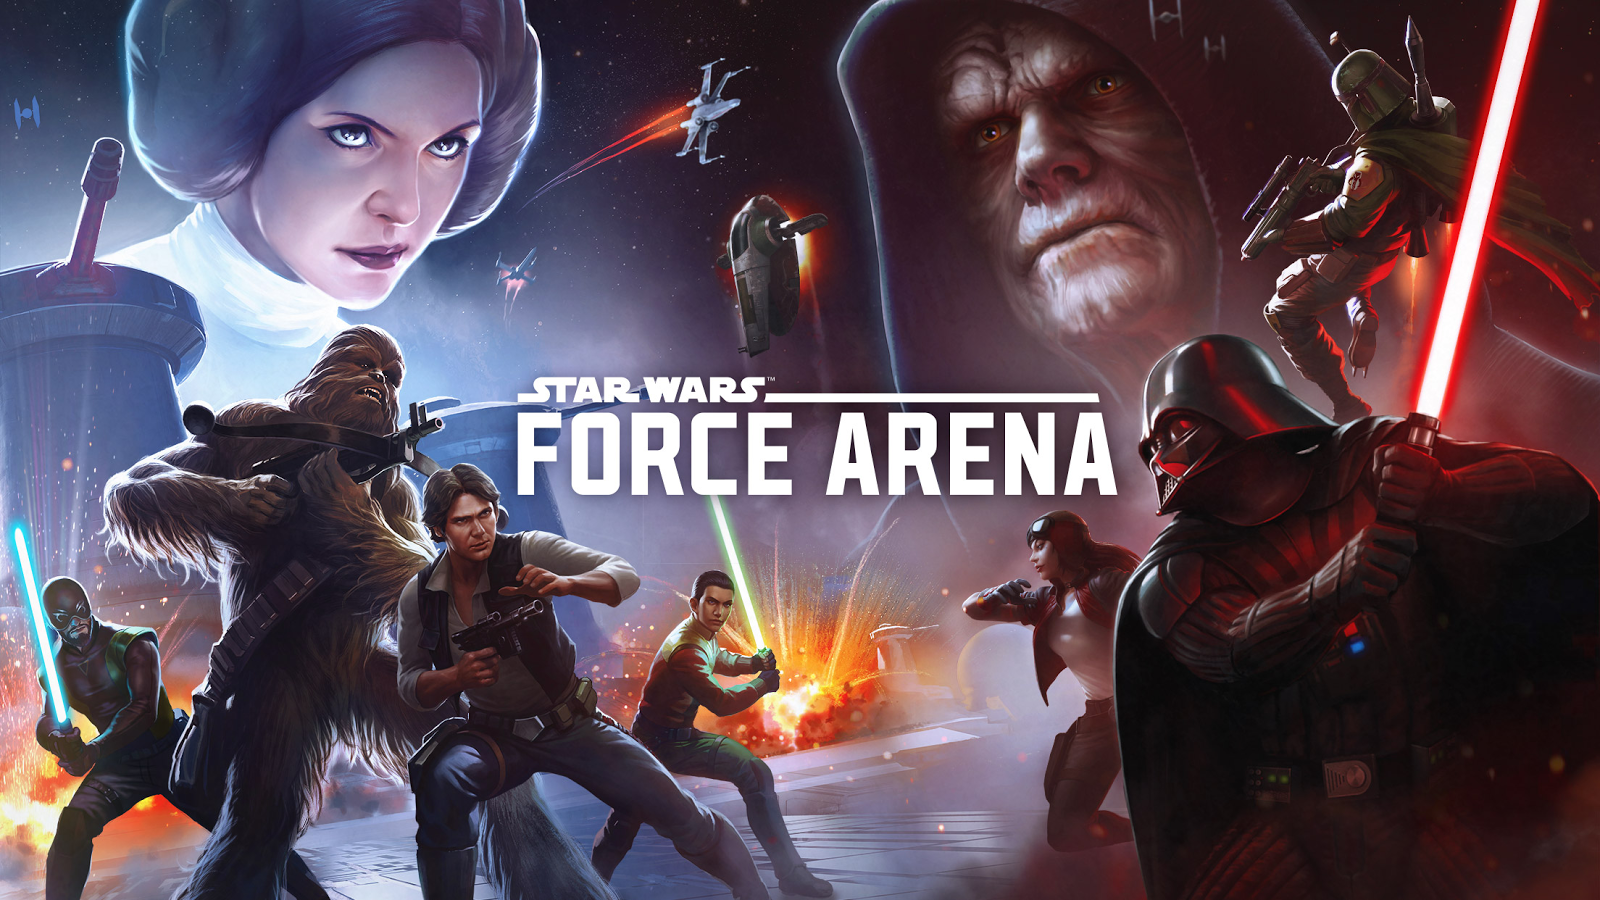 Star wars games to play online for free